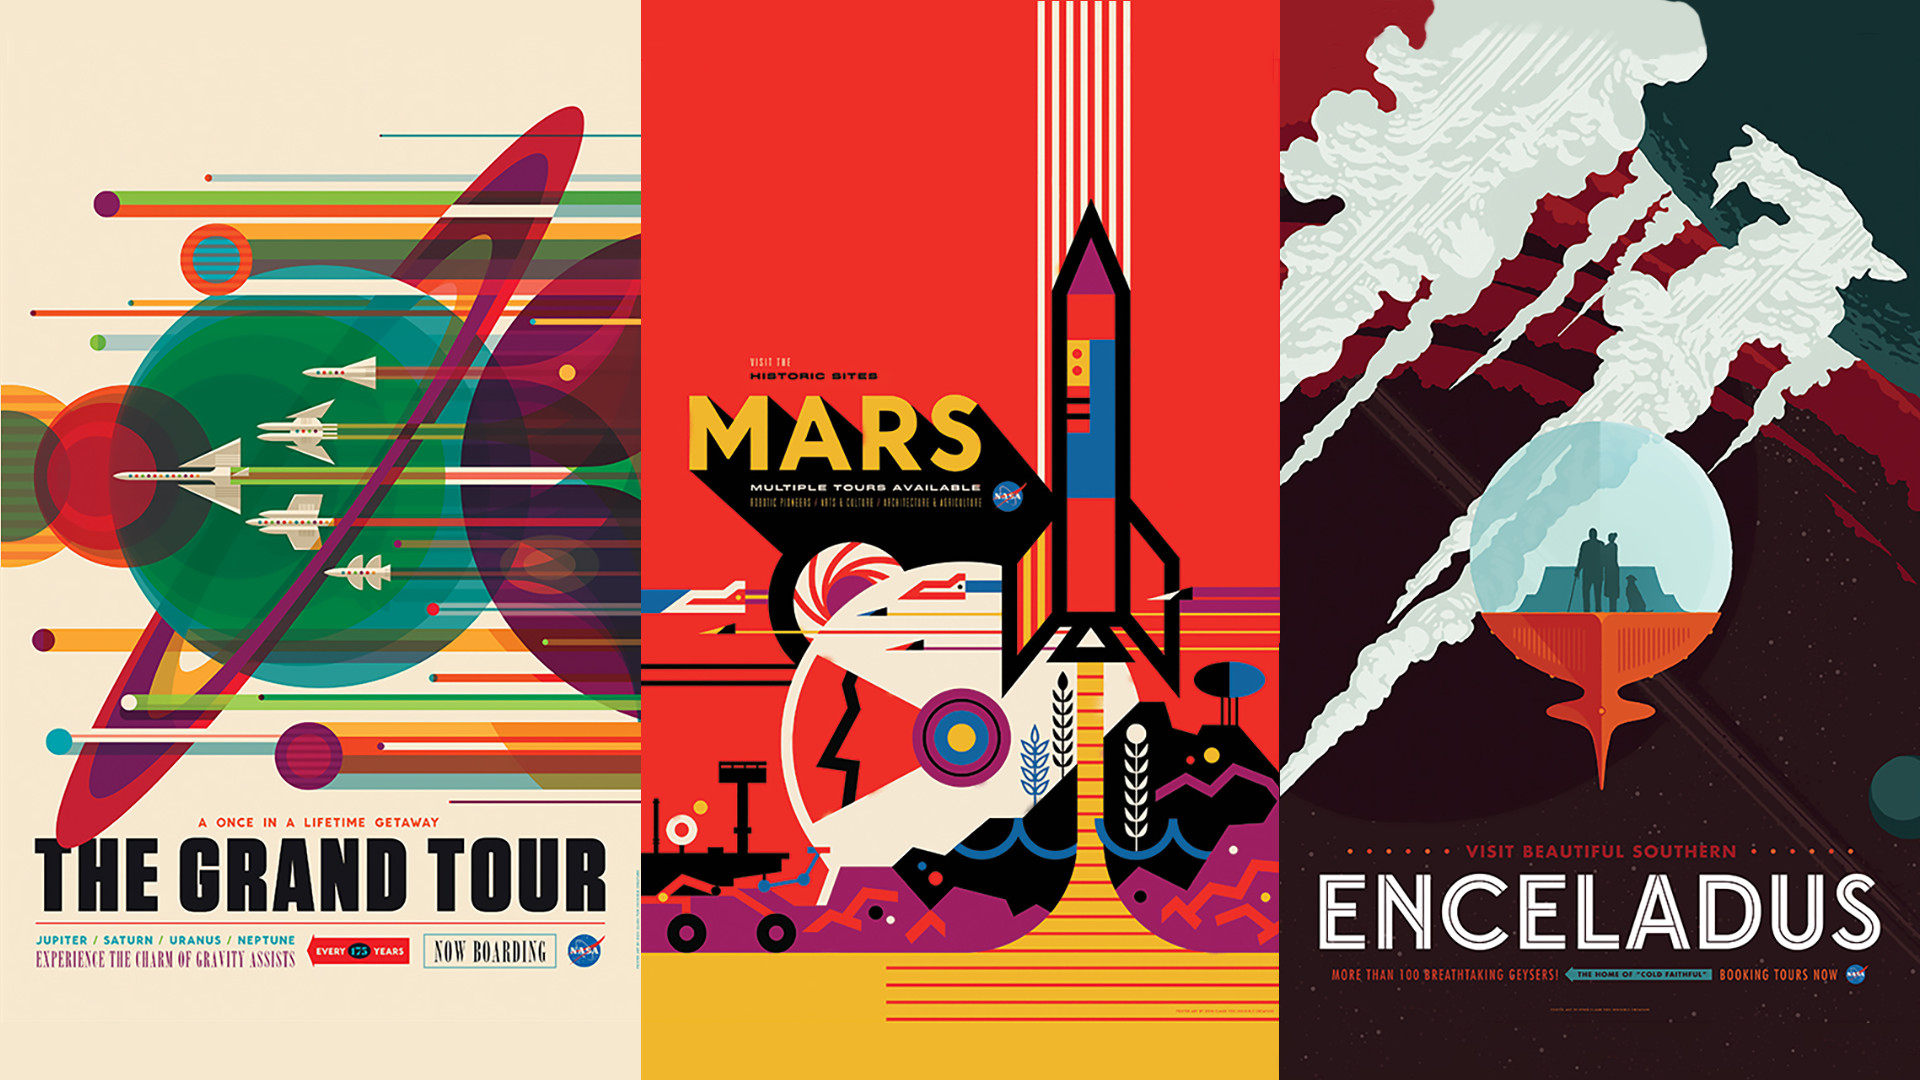 I updated the previous wallpaper and created a few new ones based on the  high res posters that NASA released yesterday